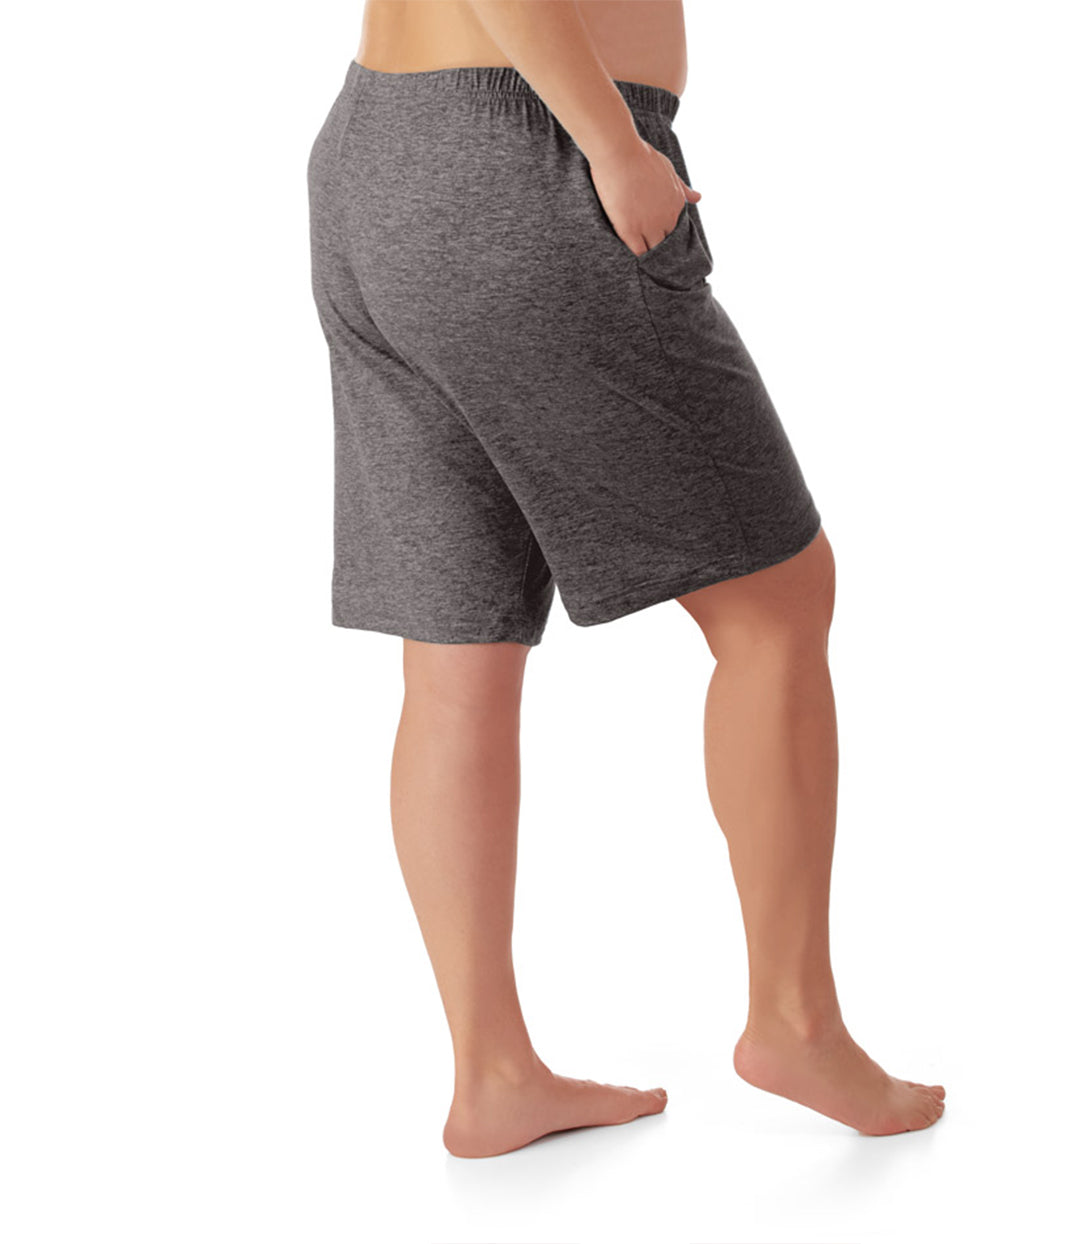 plus size yoga shorts with pockets